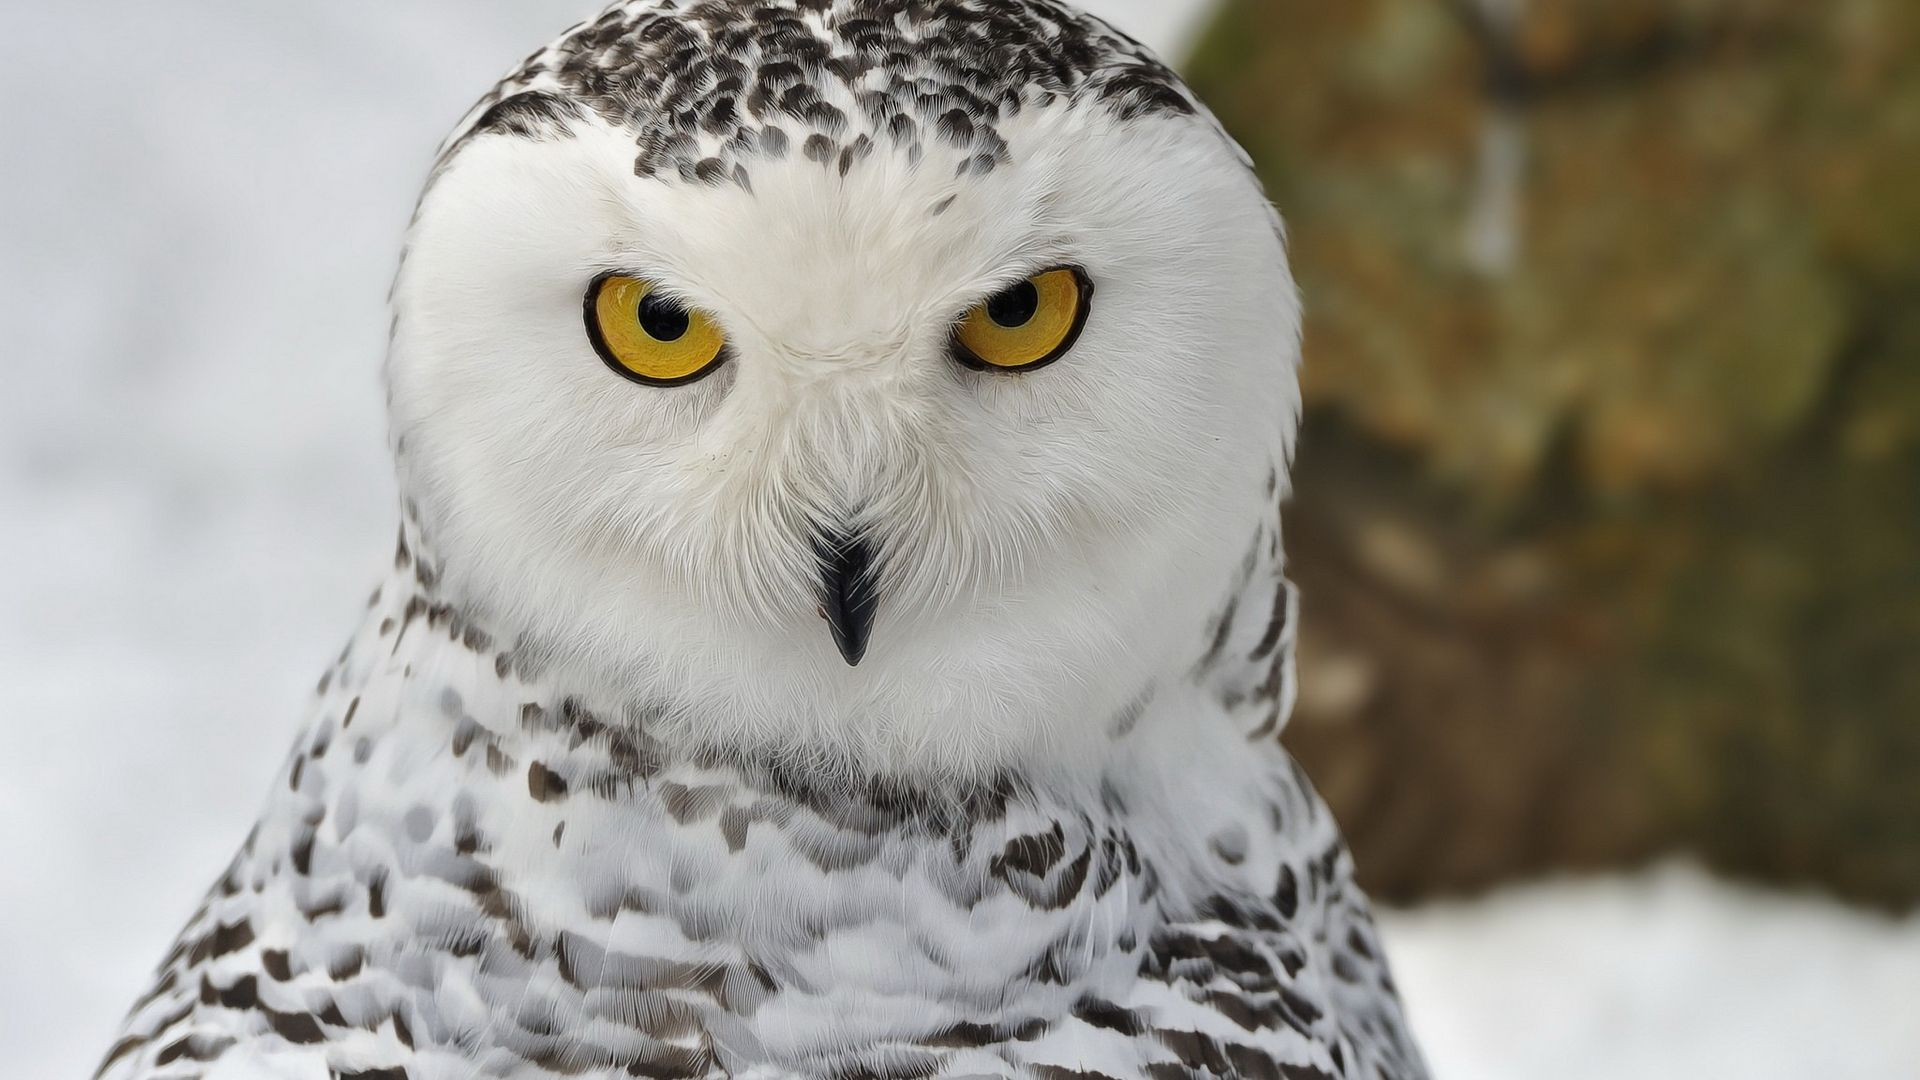 View Source Image Snowy Owl Owl Pictures Owl Wallpaper